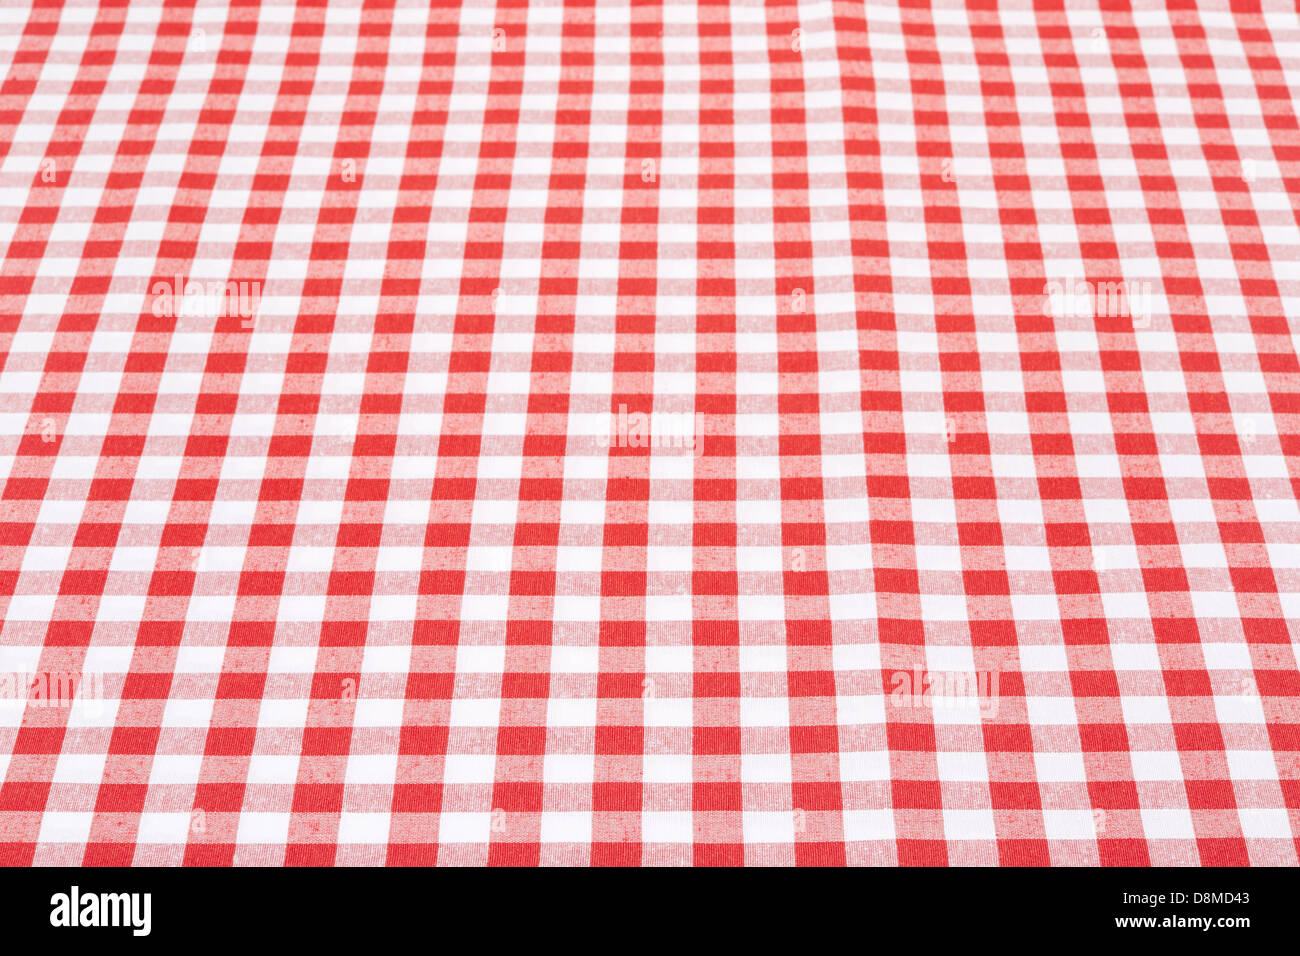 Red And White Gingham Tablecloth Texture Background In Perspective